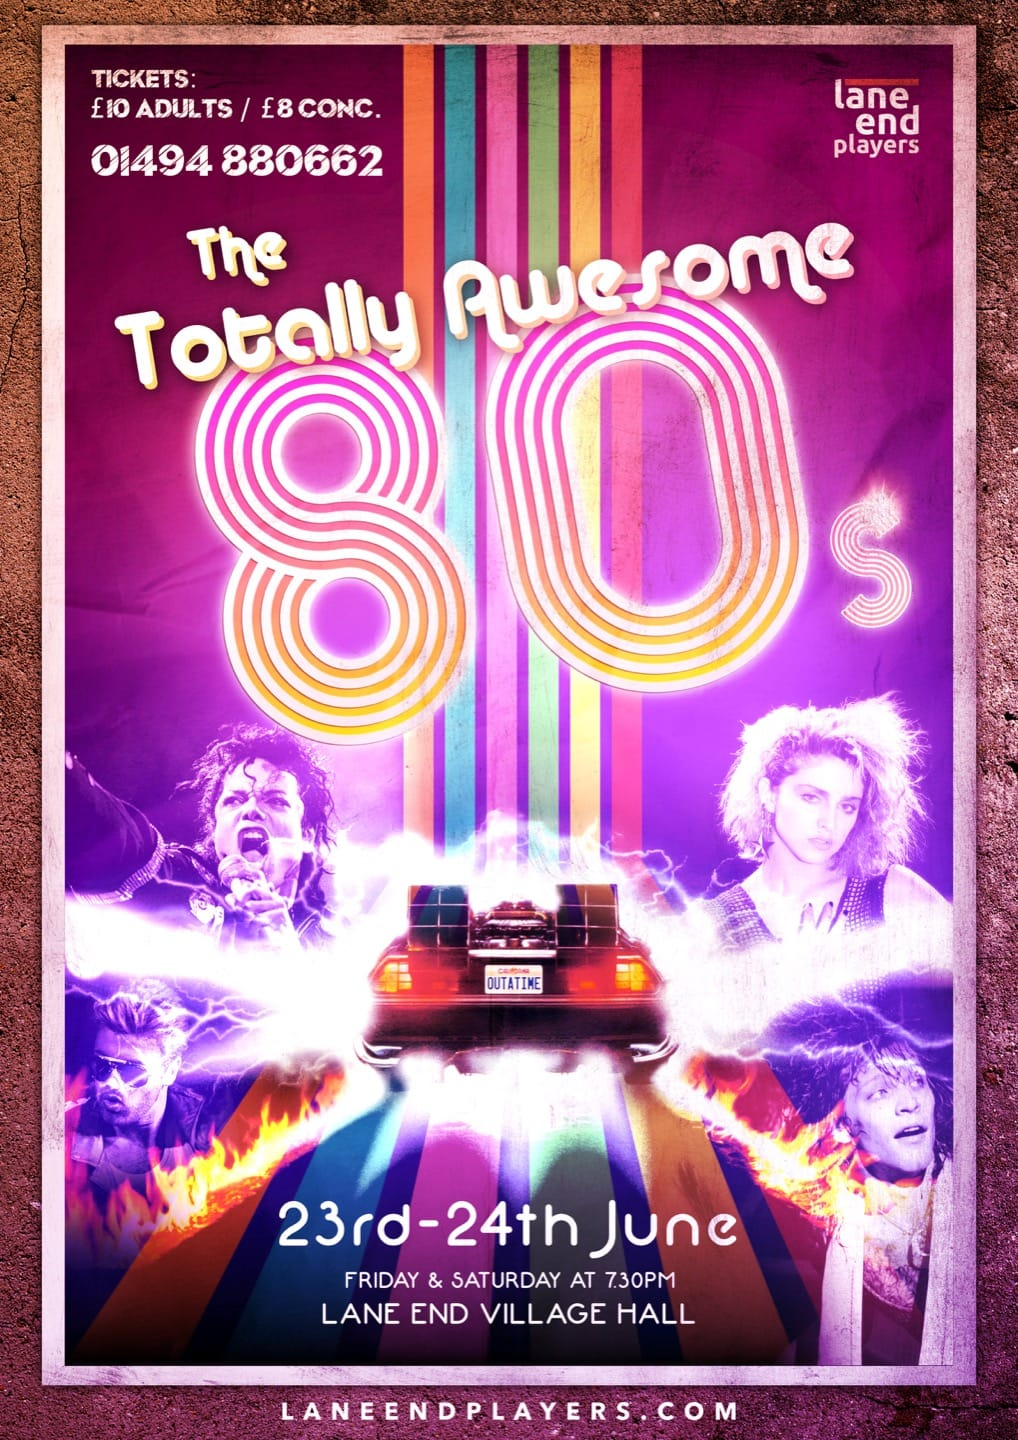 The Totally Awesome 80s